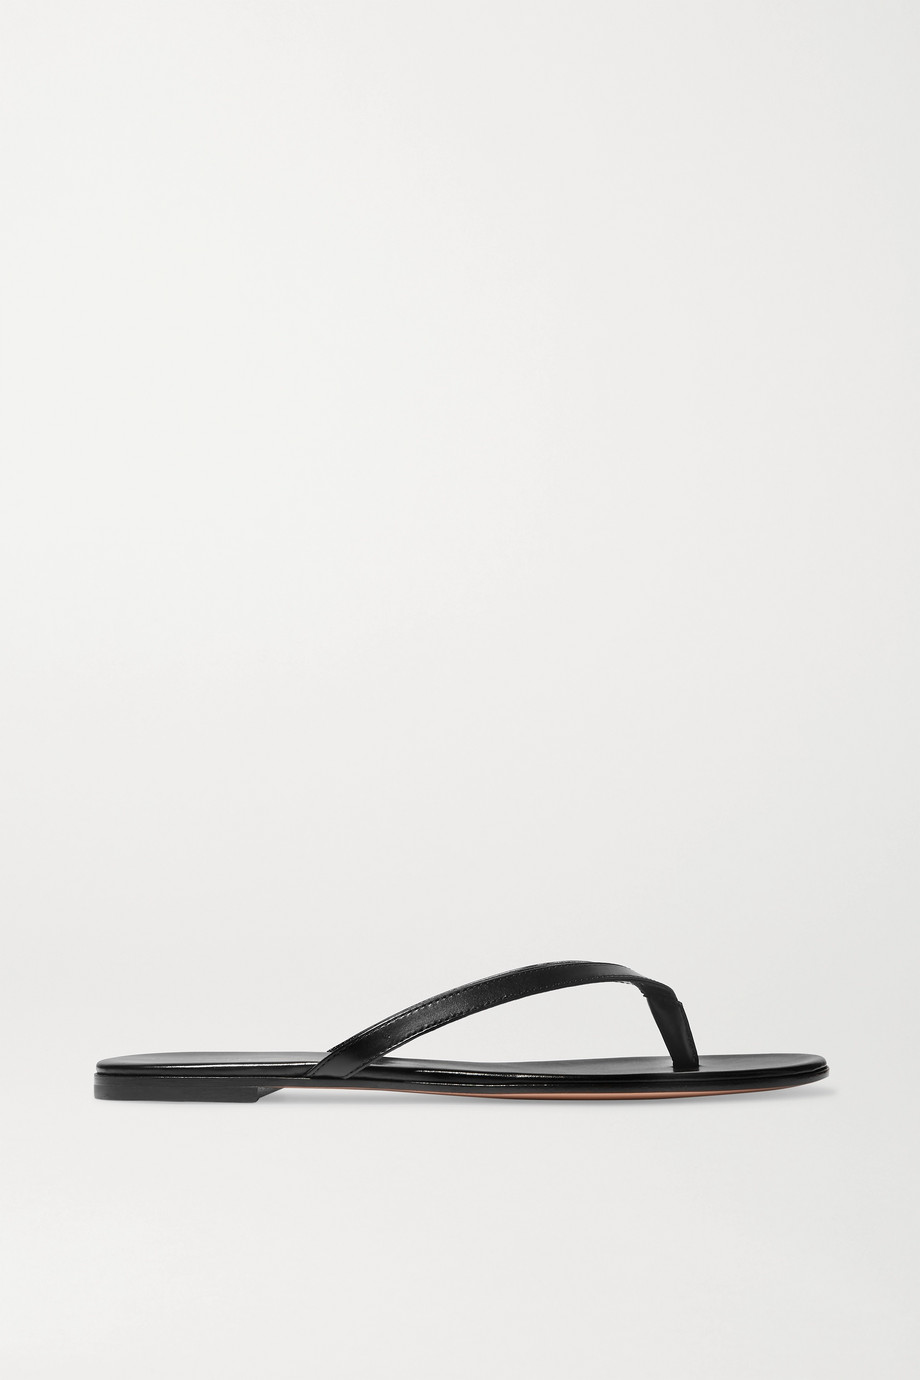 Gianvito Rossi Leather flip flops